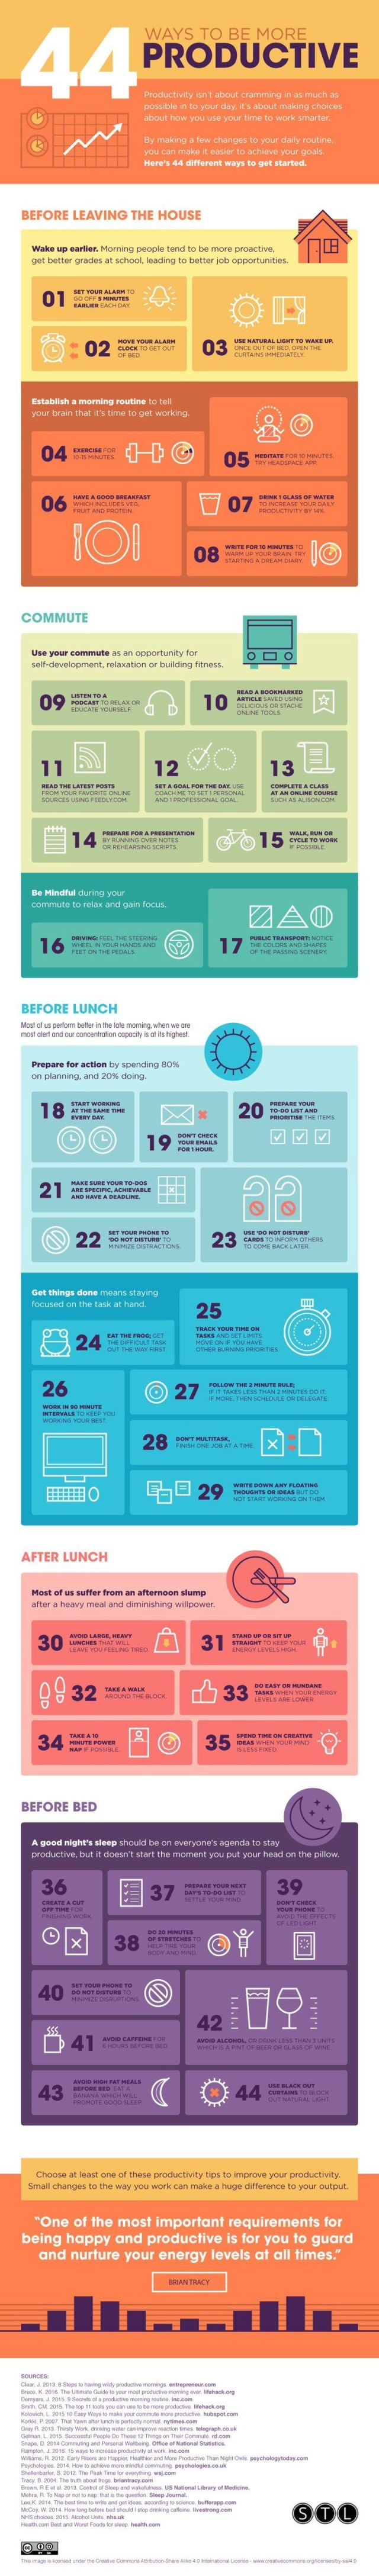 44 Ways To Be More Productive #Infographic